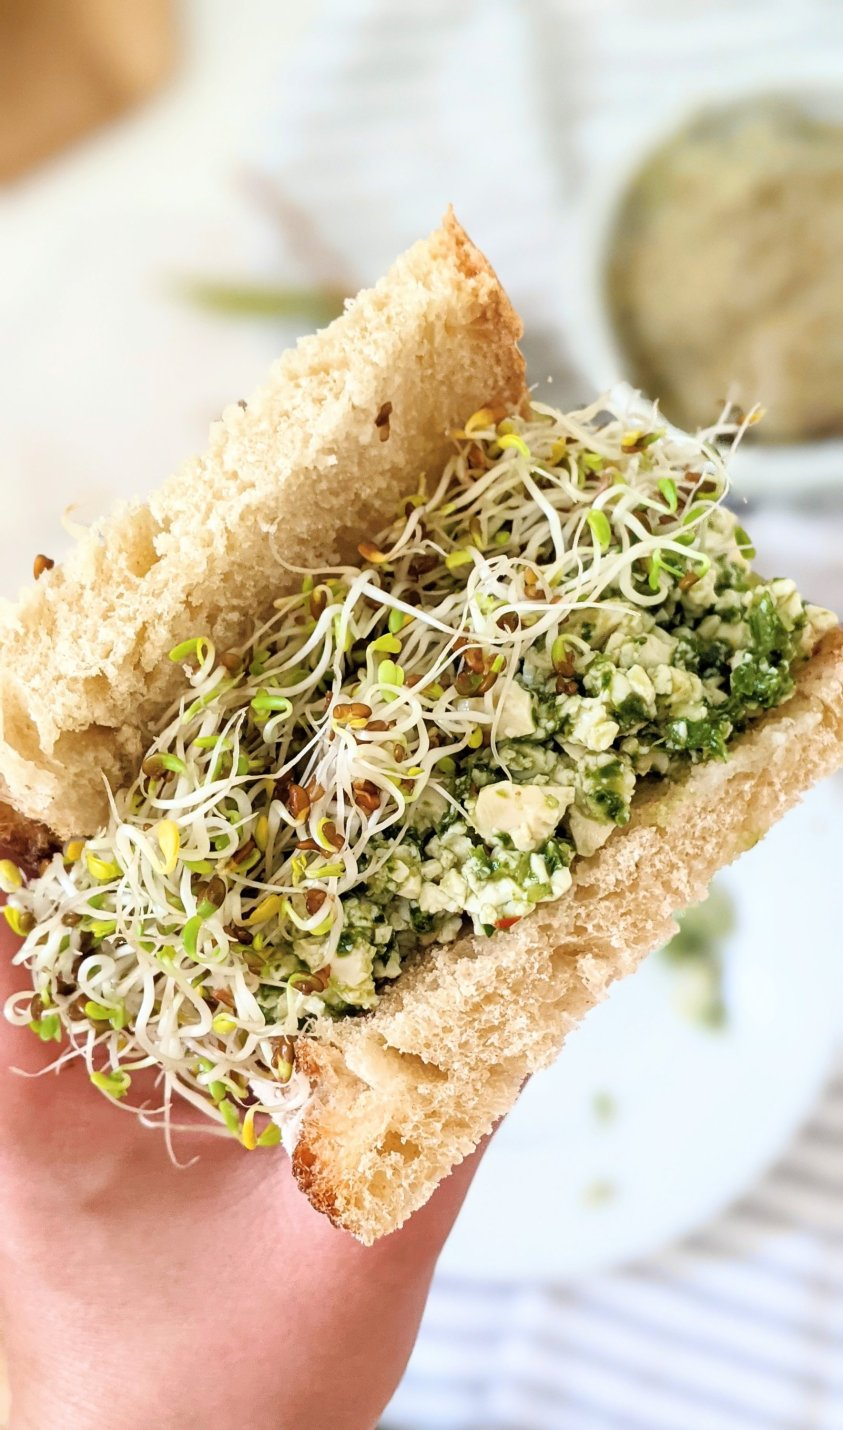 no cook pesto sandwich recipe summer sandwiches vegan gluten free plant based lunches for hot days